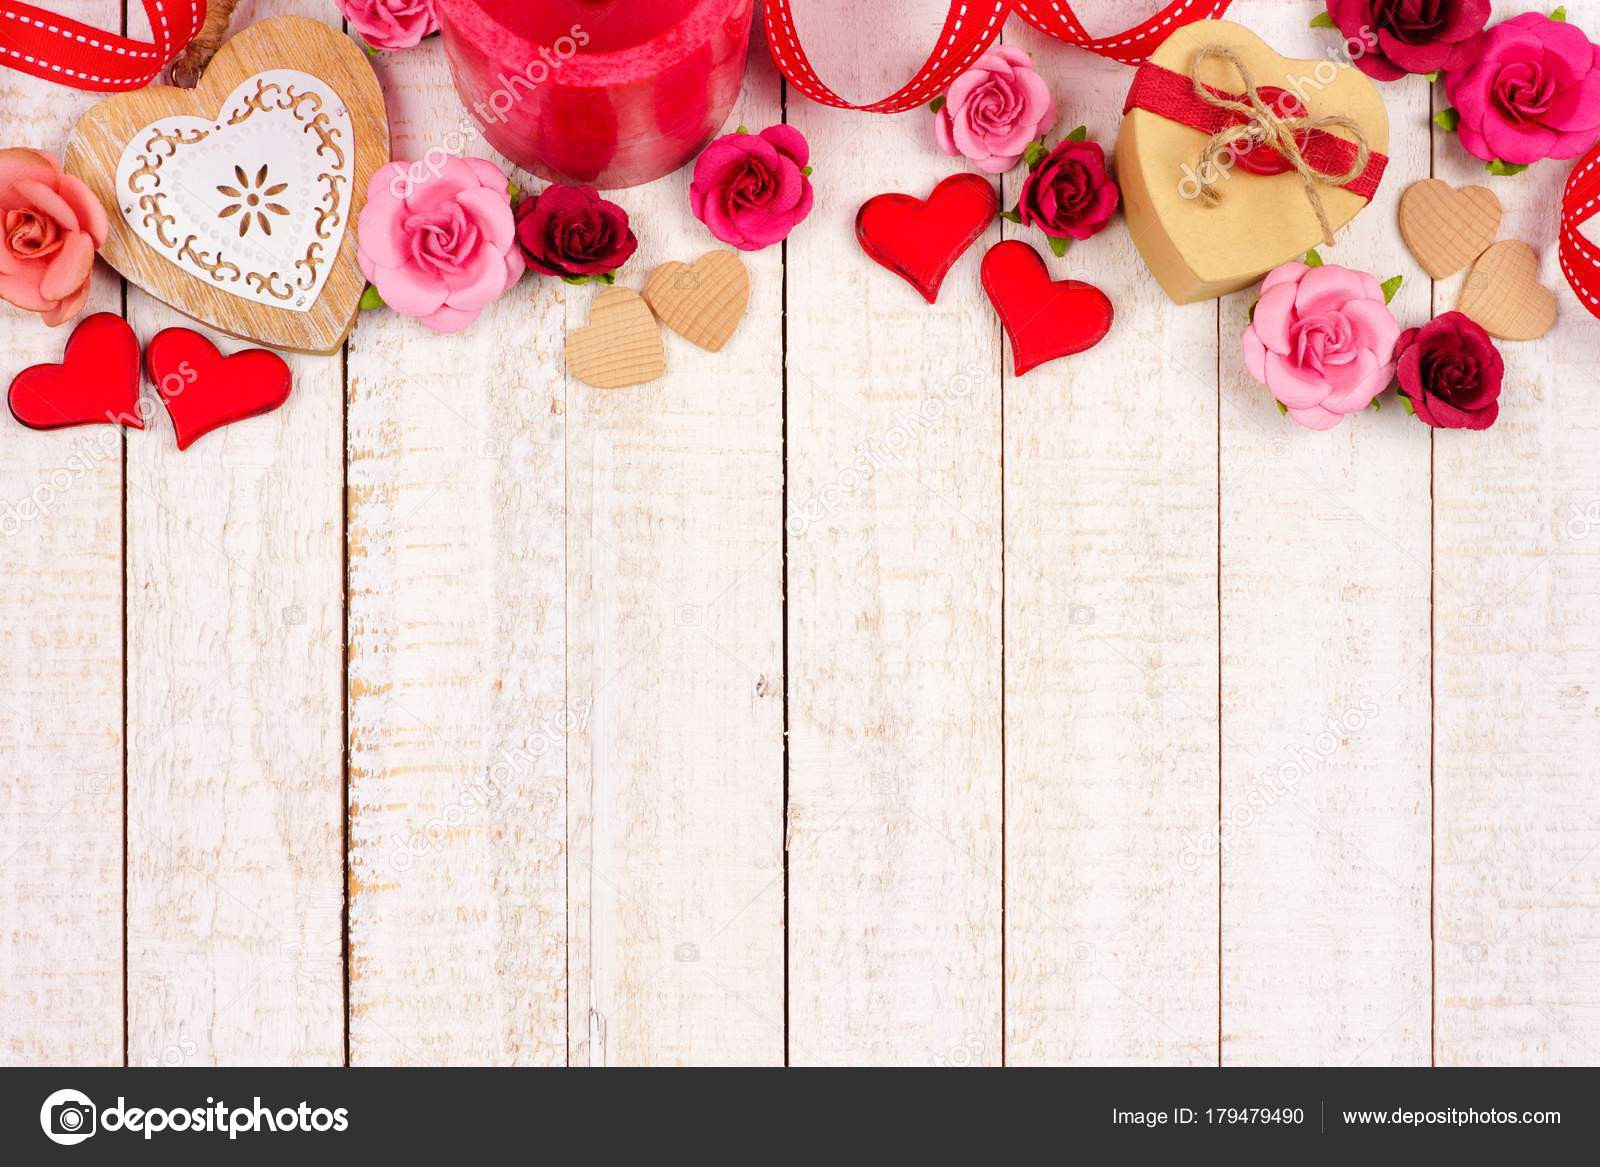 Valentines Day Top Border Hearts Flowers Gifts Decor Rustic White